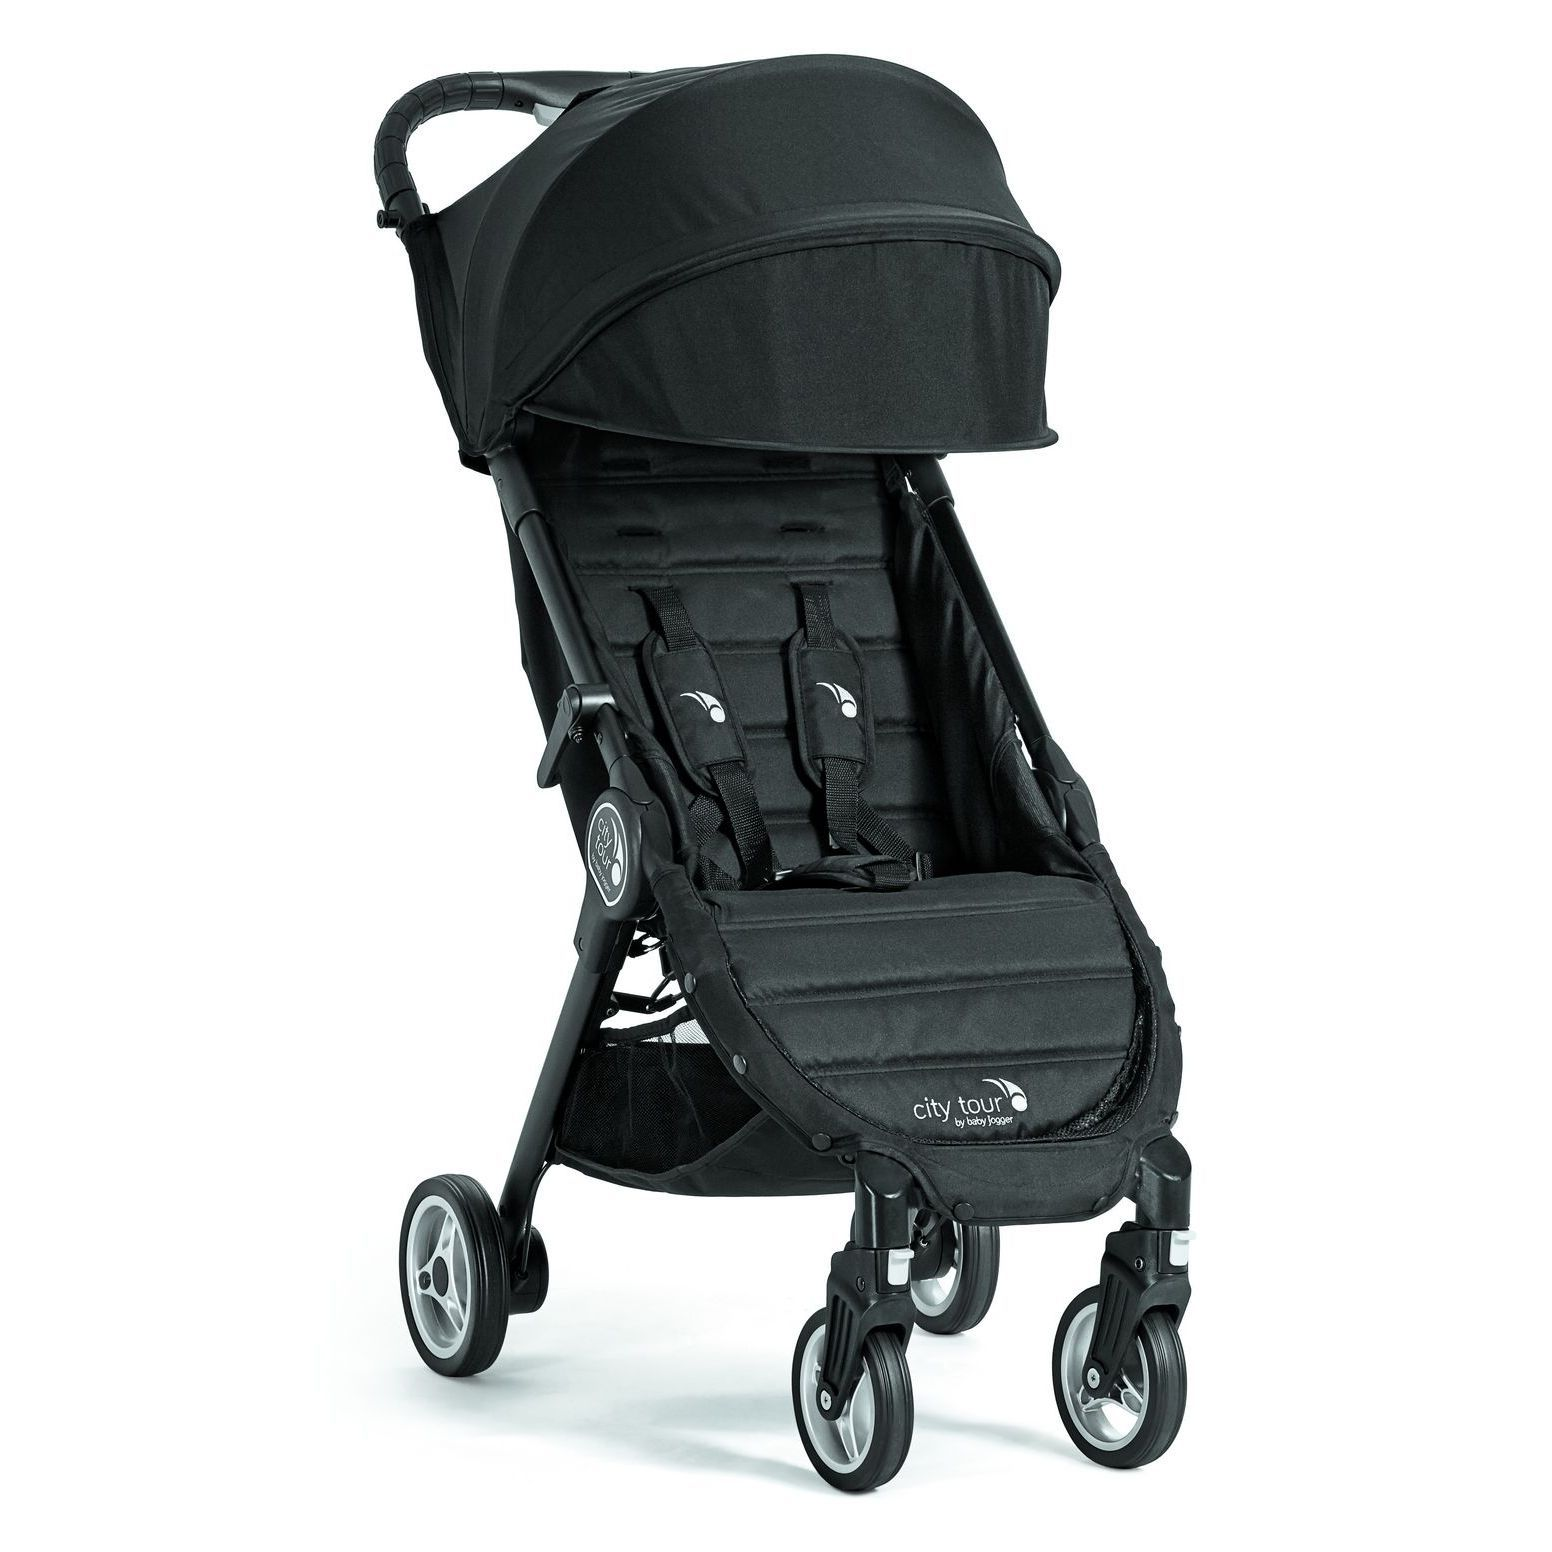 Baby Jogger City Tour Stroller (With images) Baby jogger